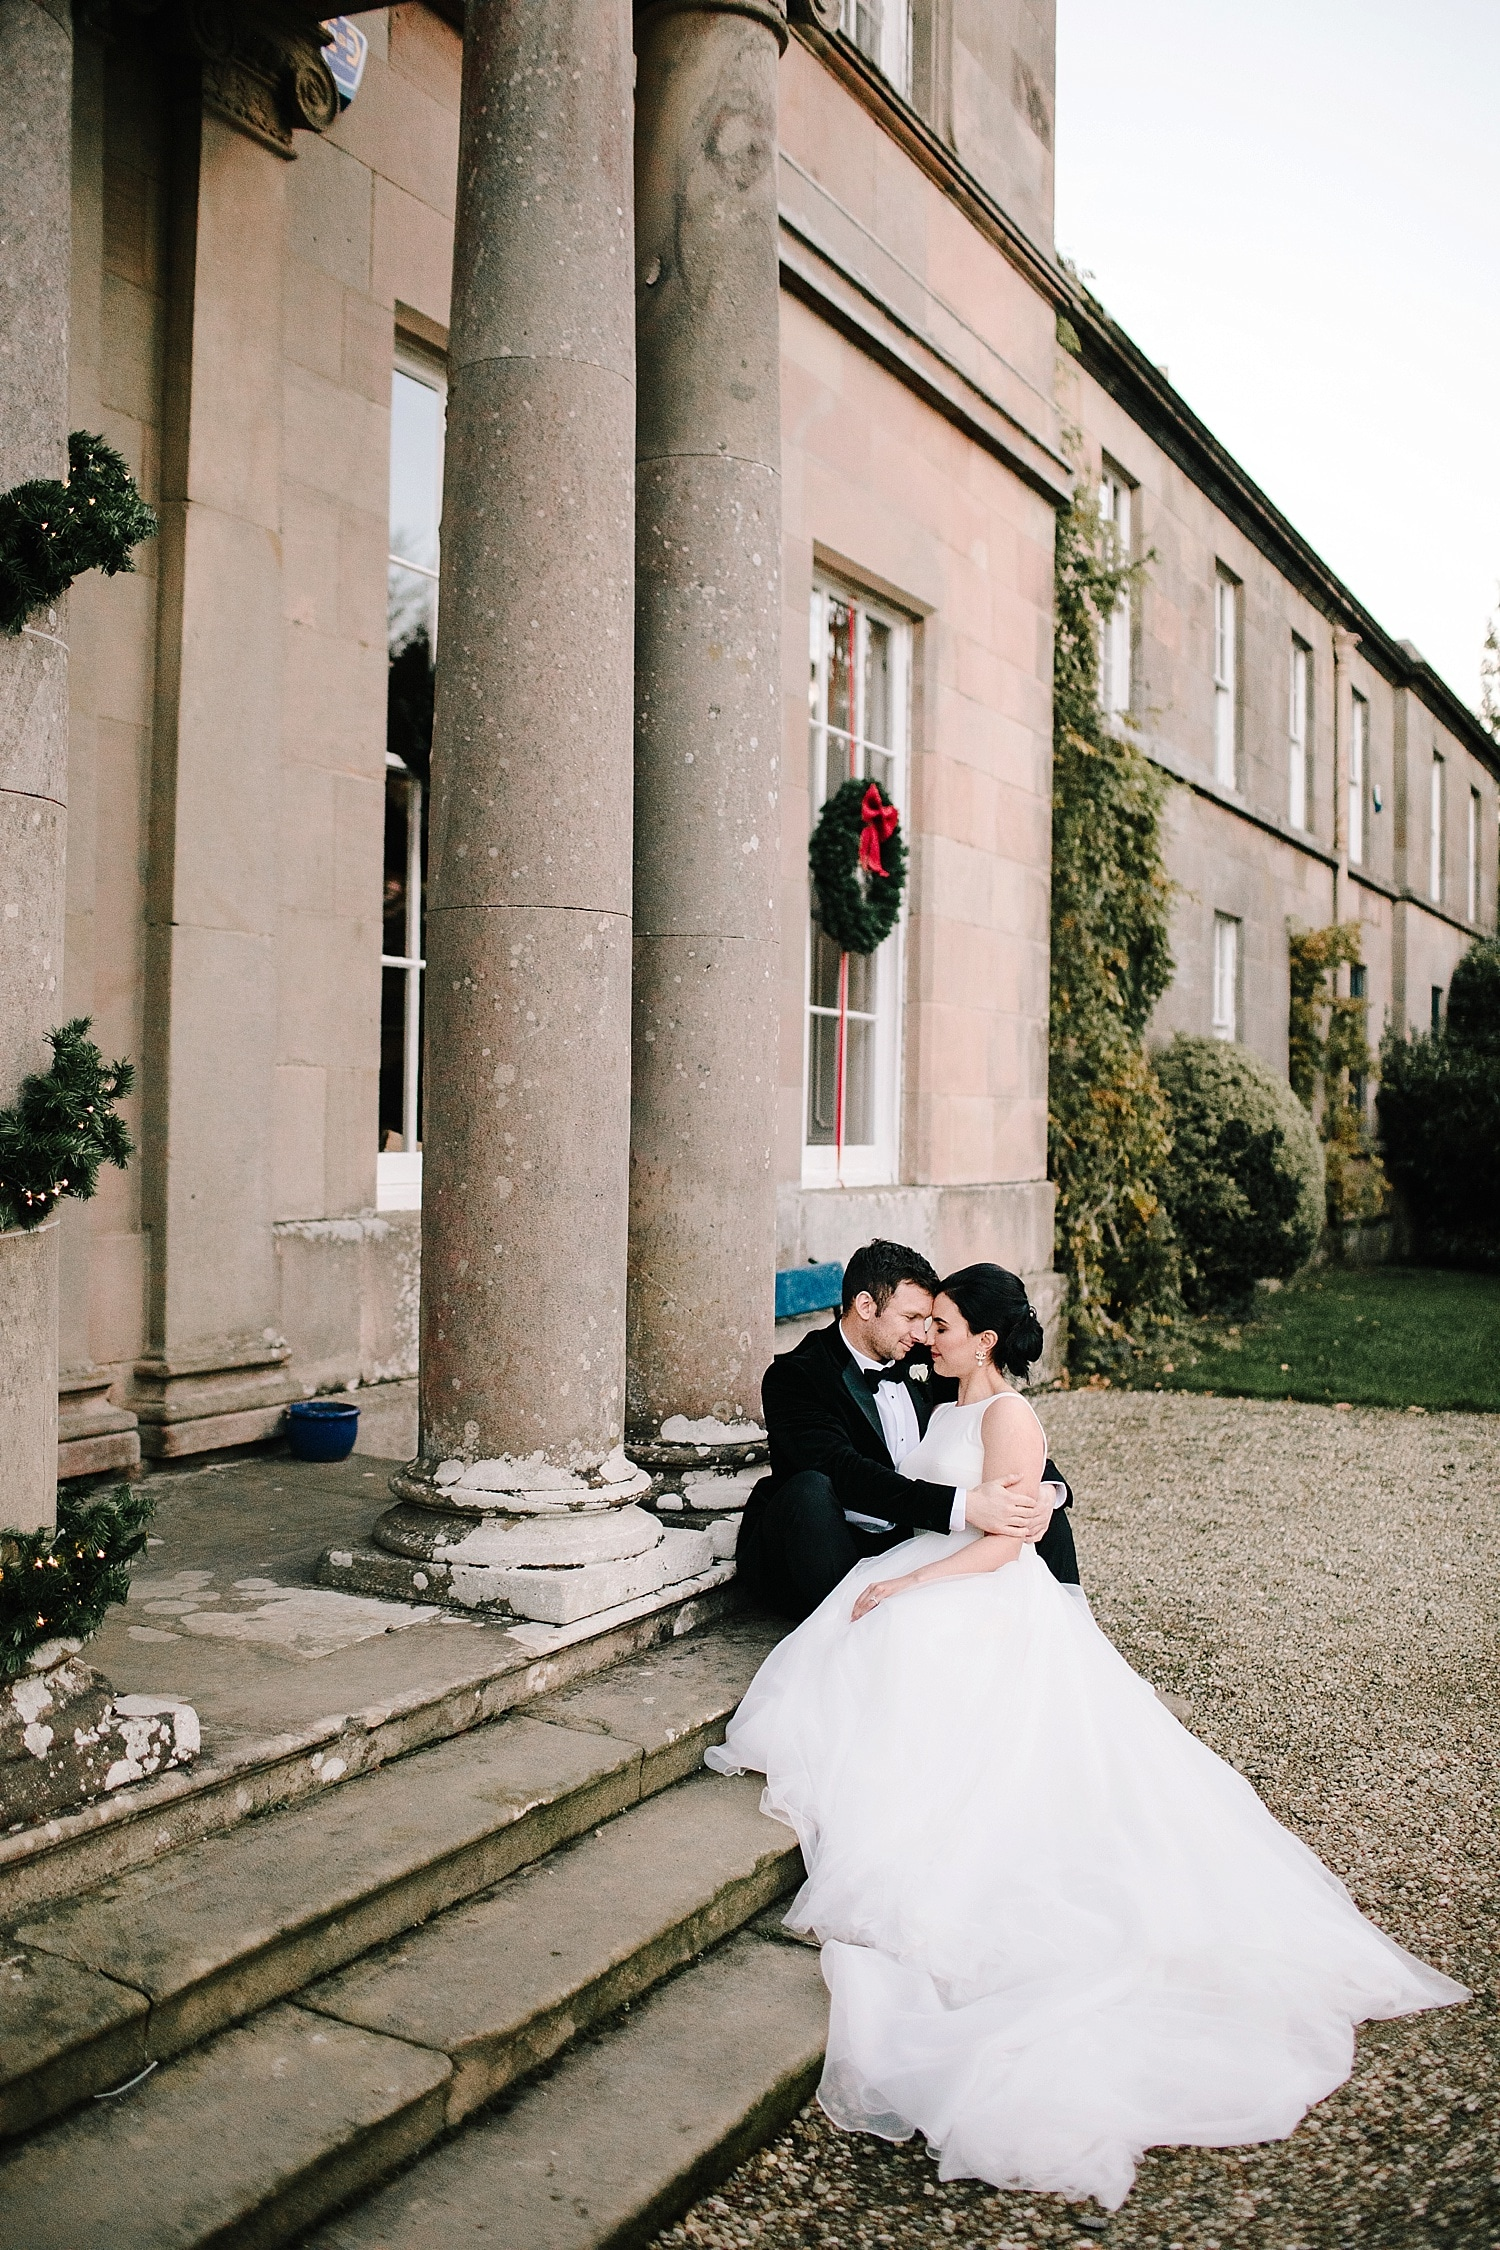 Drenagh_Estate_Wedding_Sharon_Kee_Photography